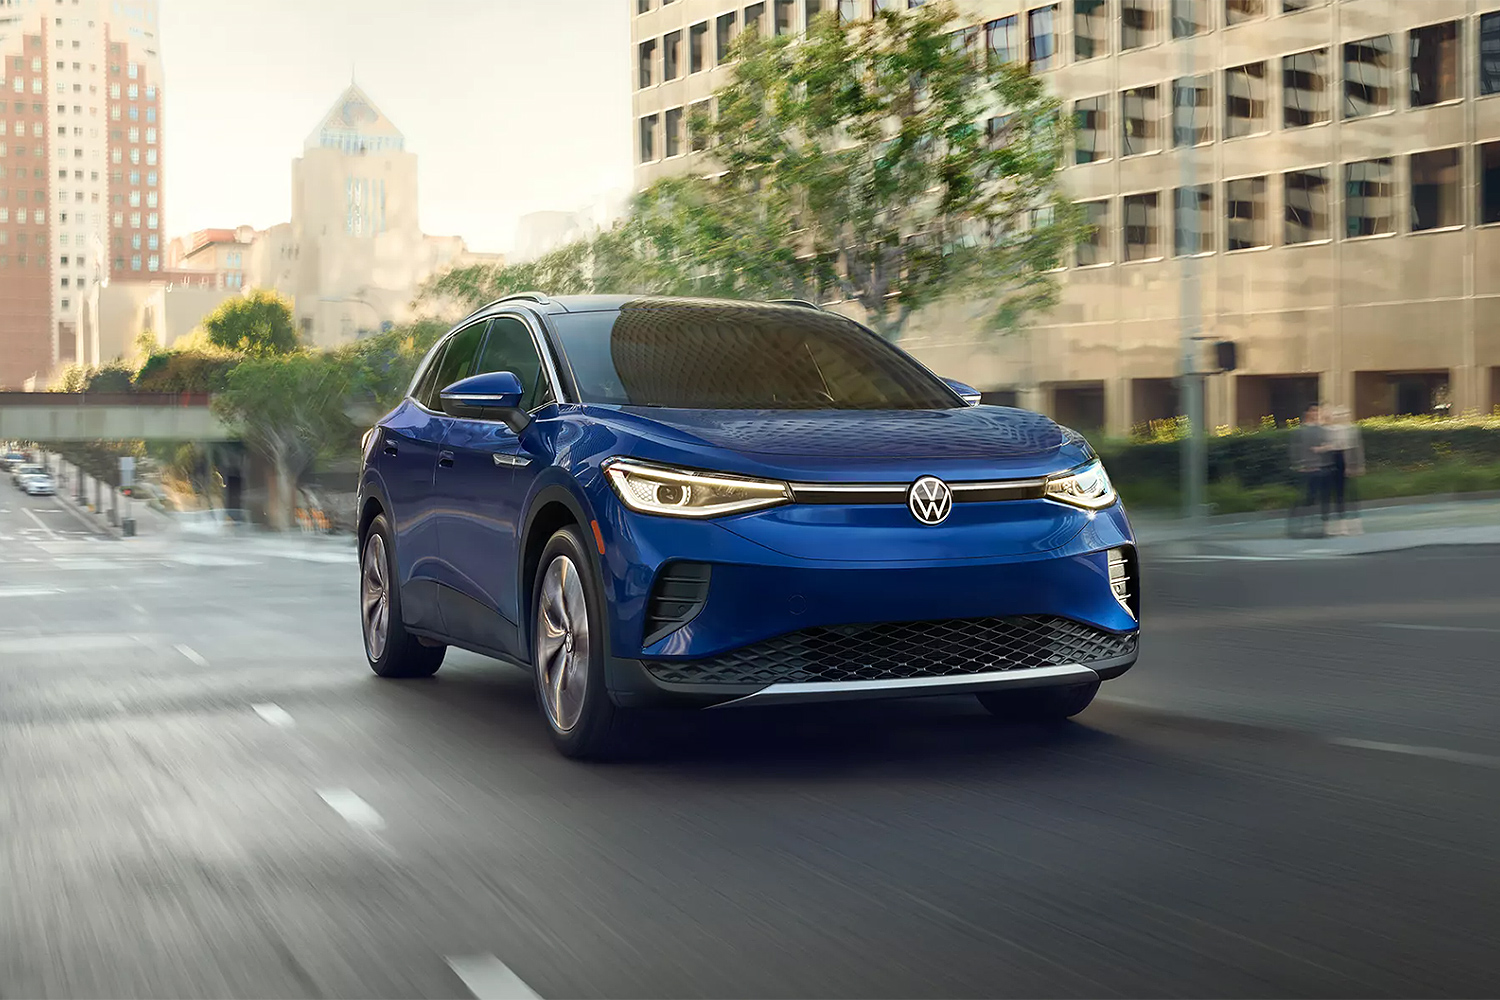 So Long, Volkswagen — Automaker Is Changing Name to Voltswagen in Move to Electric Vehicles